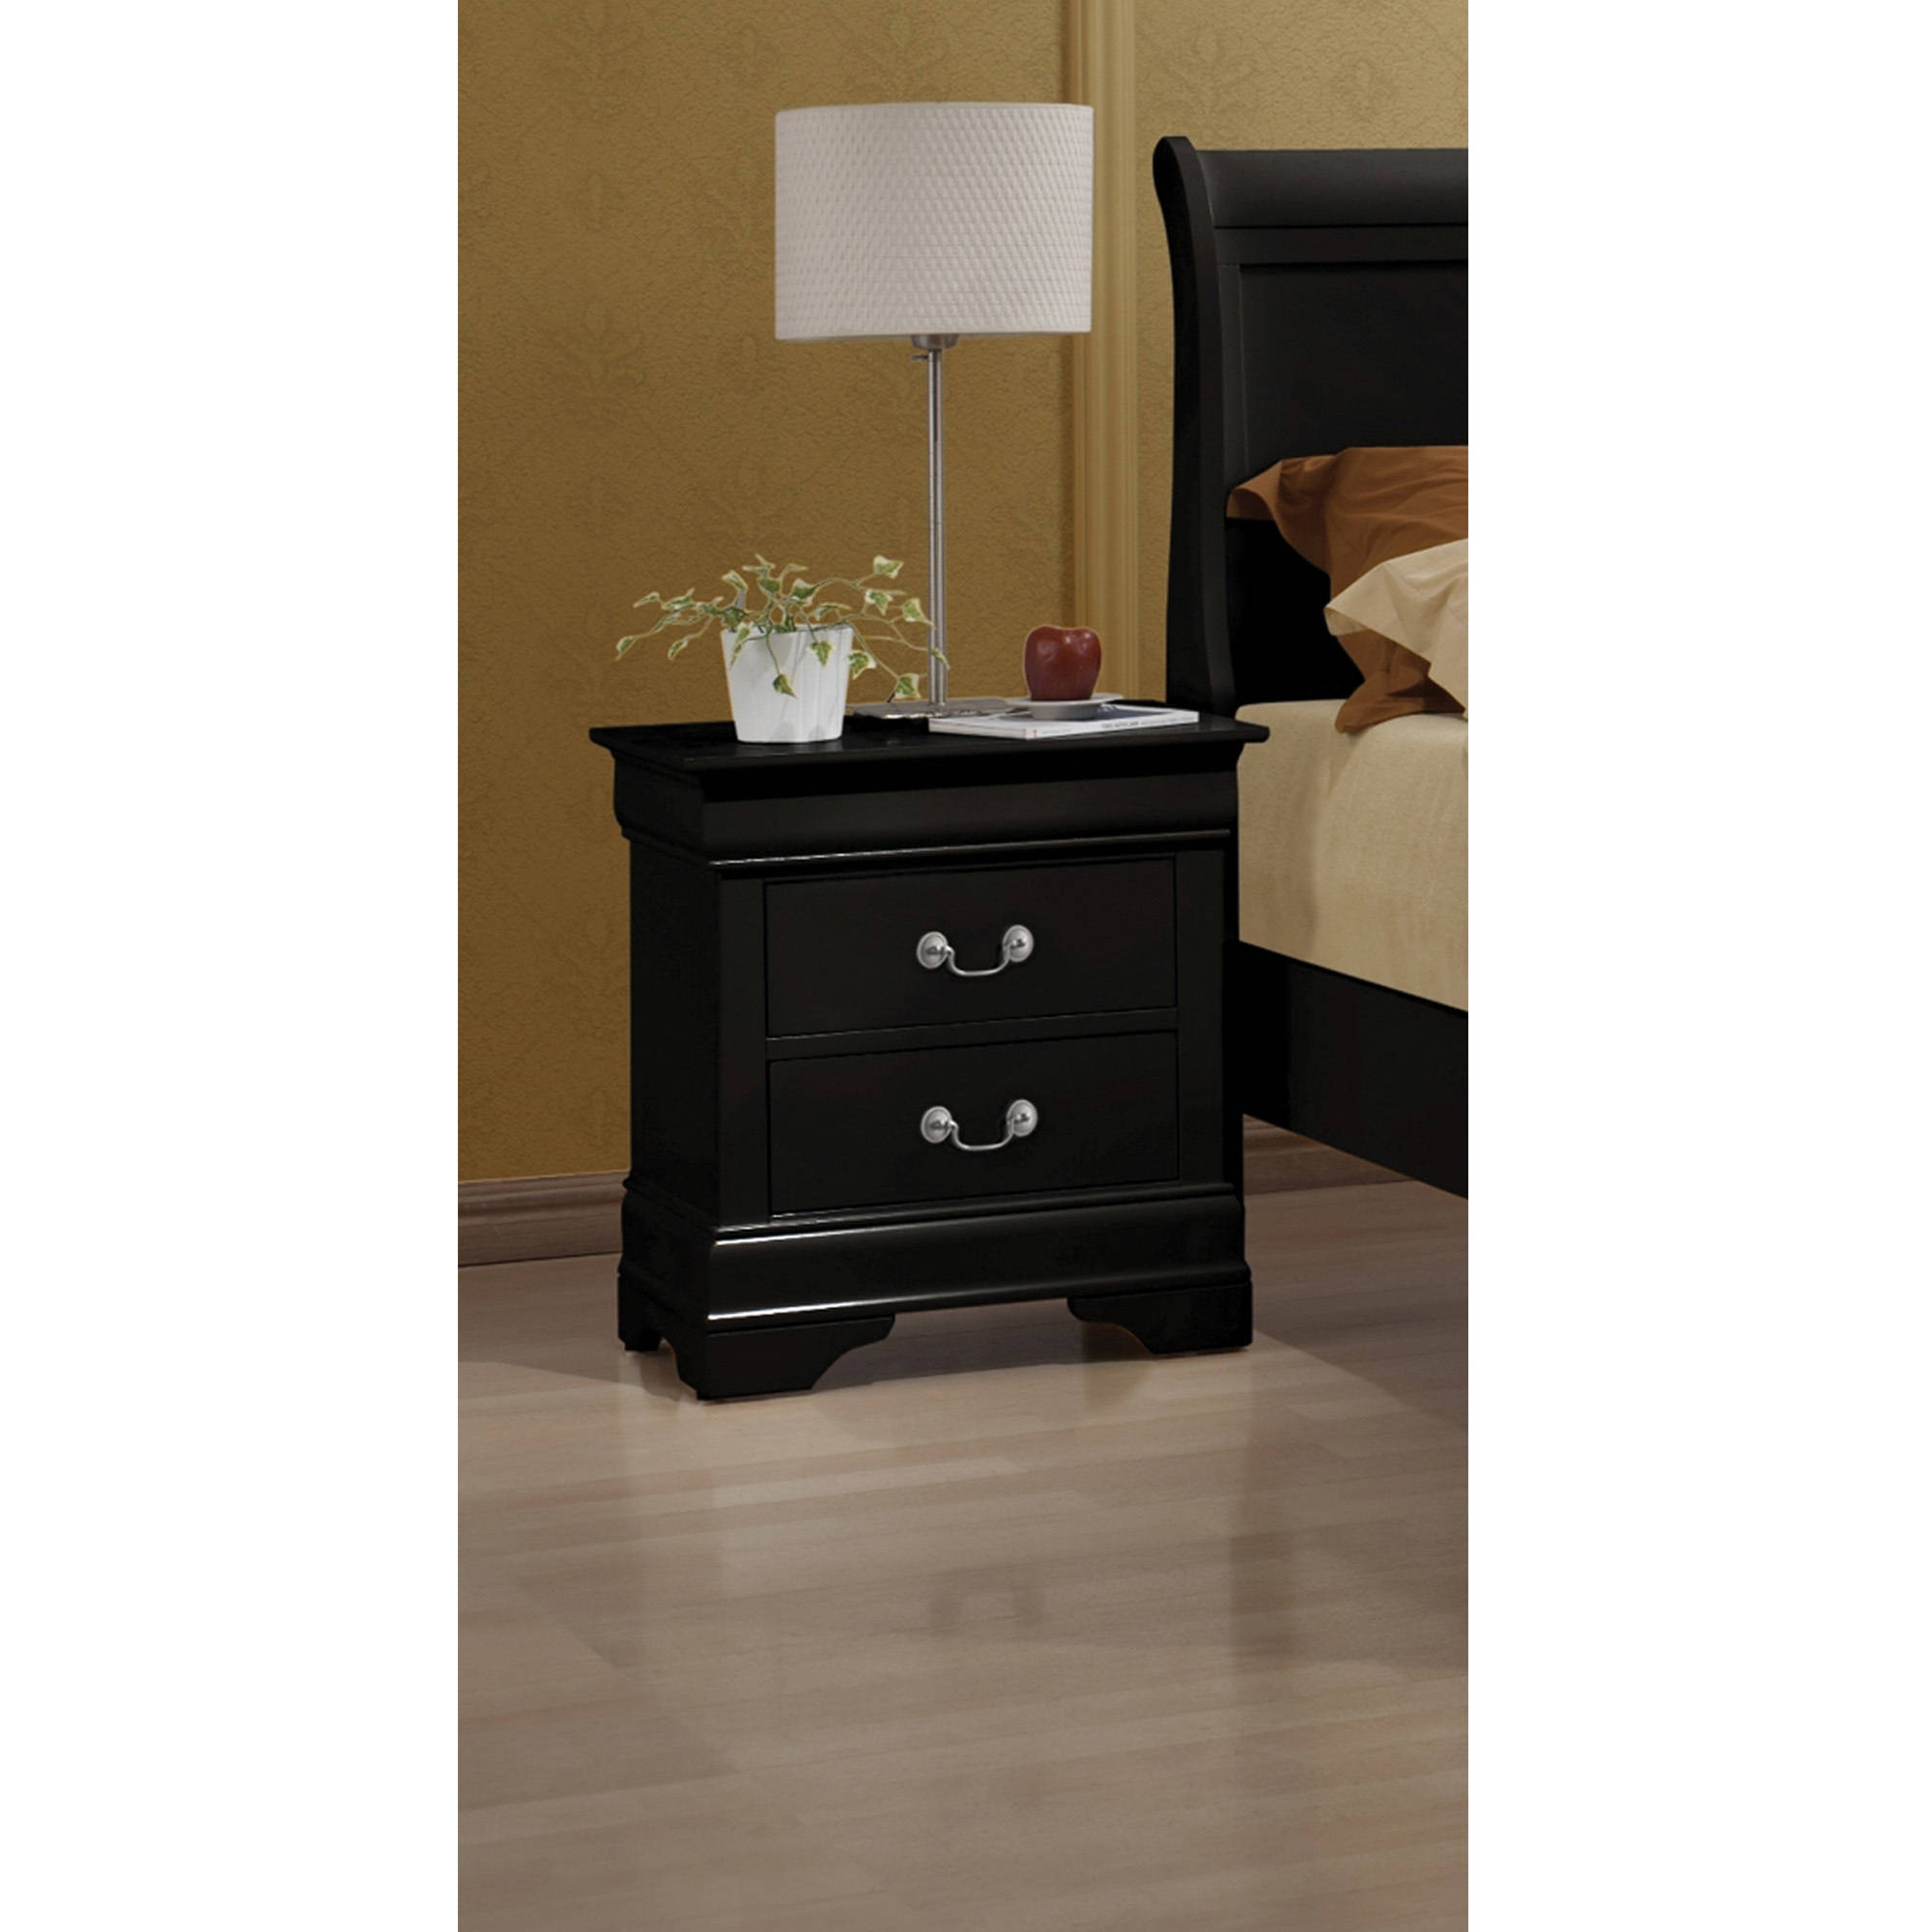 Coaster Company Louis Philippe Collection Nightstand, Black by Coaster Company